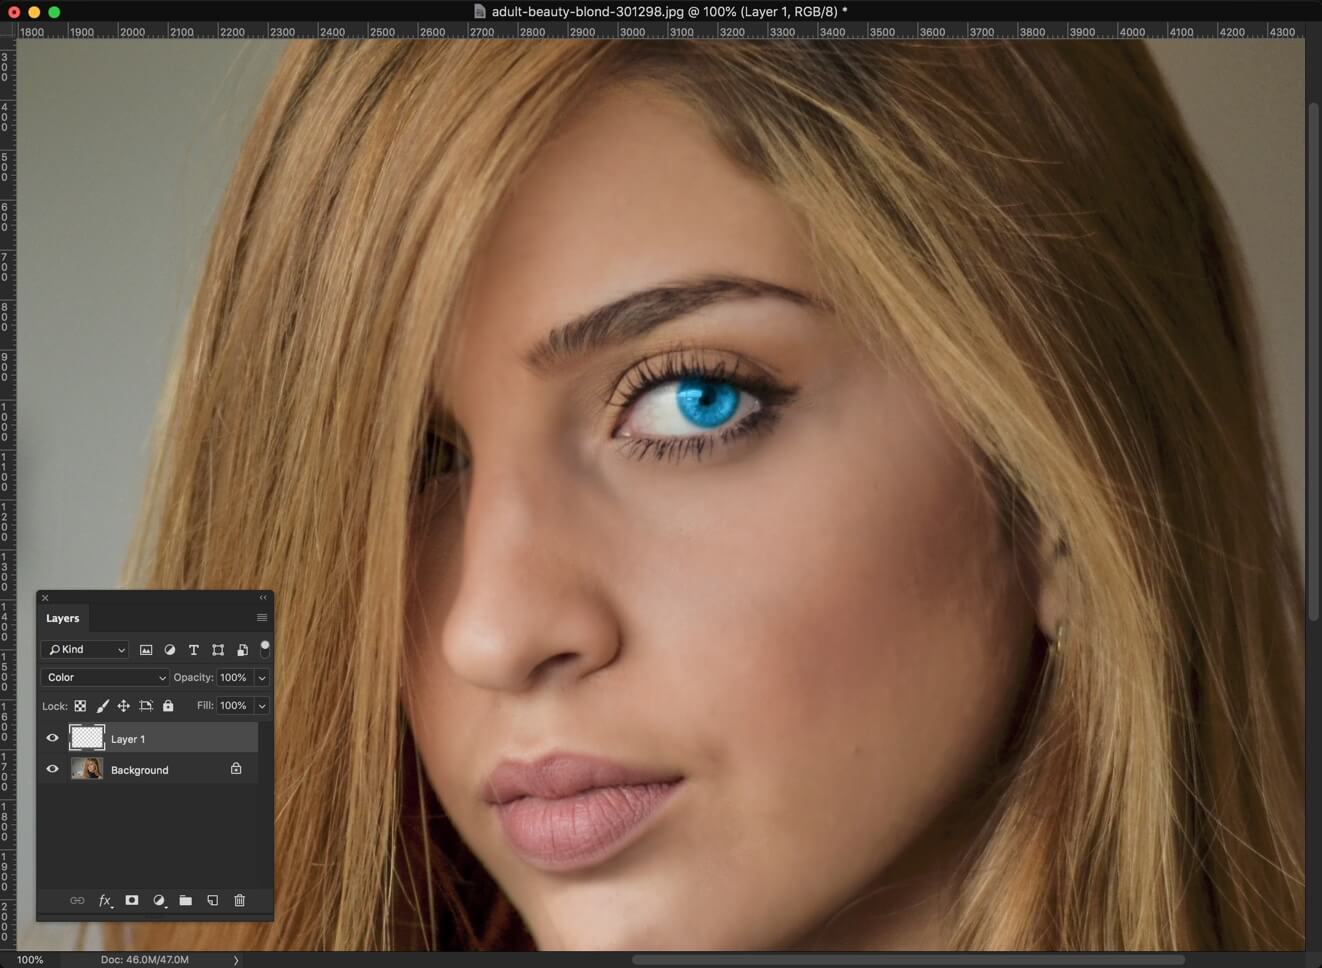 4-2 - 2 Steps to Change Eye Color in Photoshop